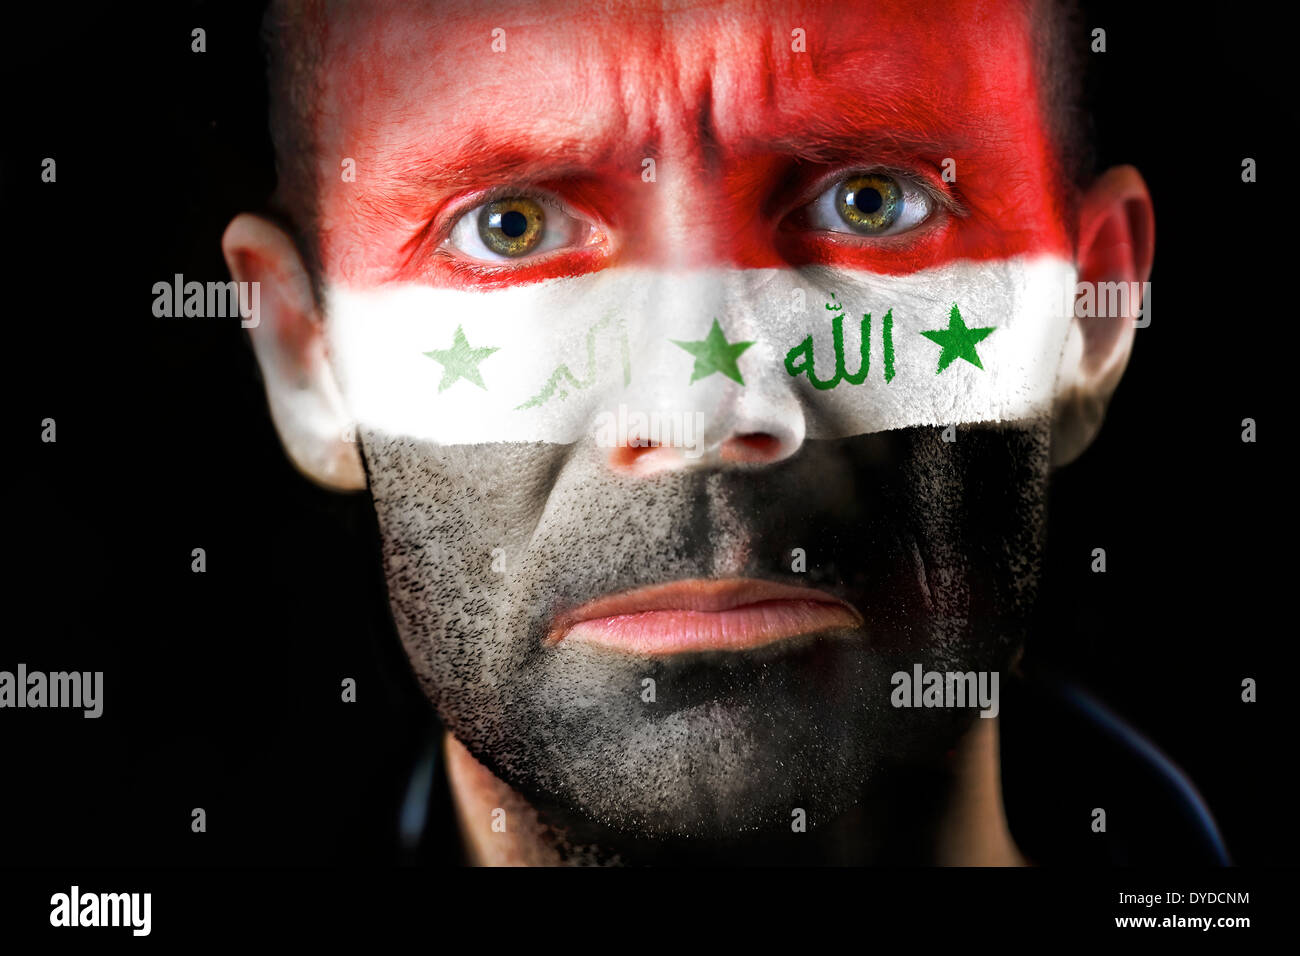 An intense stare from a man with their face painted with the Iraq flag. - Stock Image